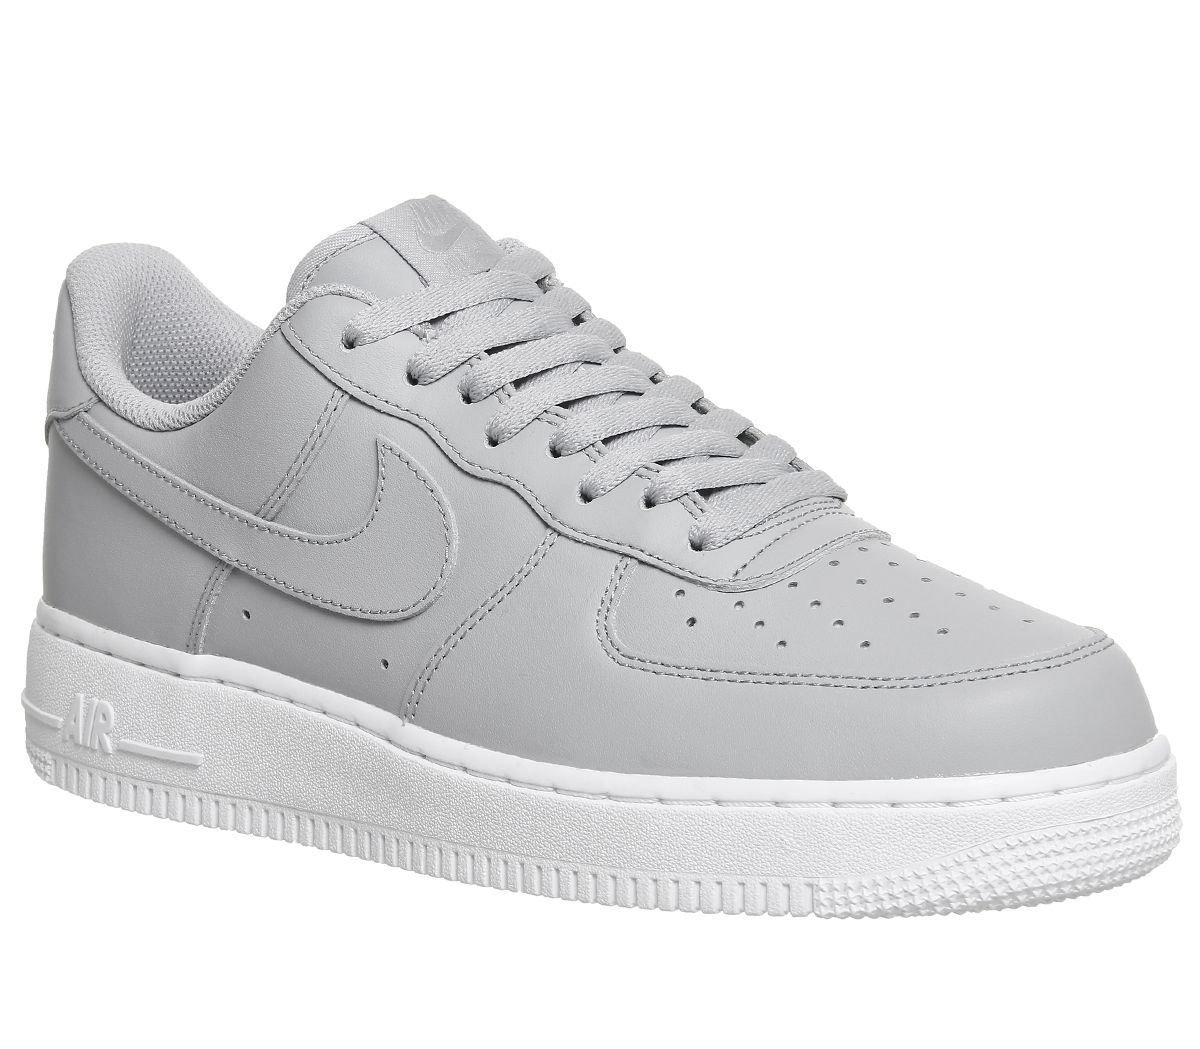 best service 58f35 1be59 Nike Air Force 1 07 Trainers Wolf Grey White Grey - His trainers